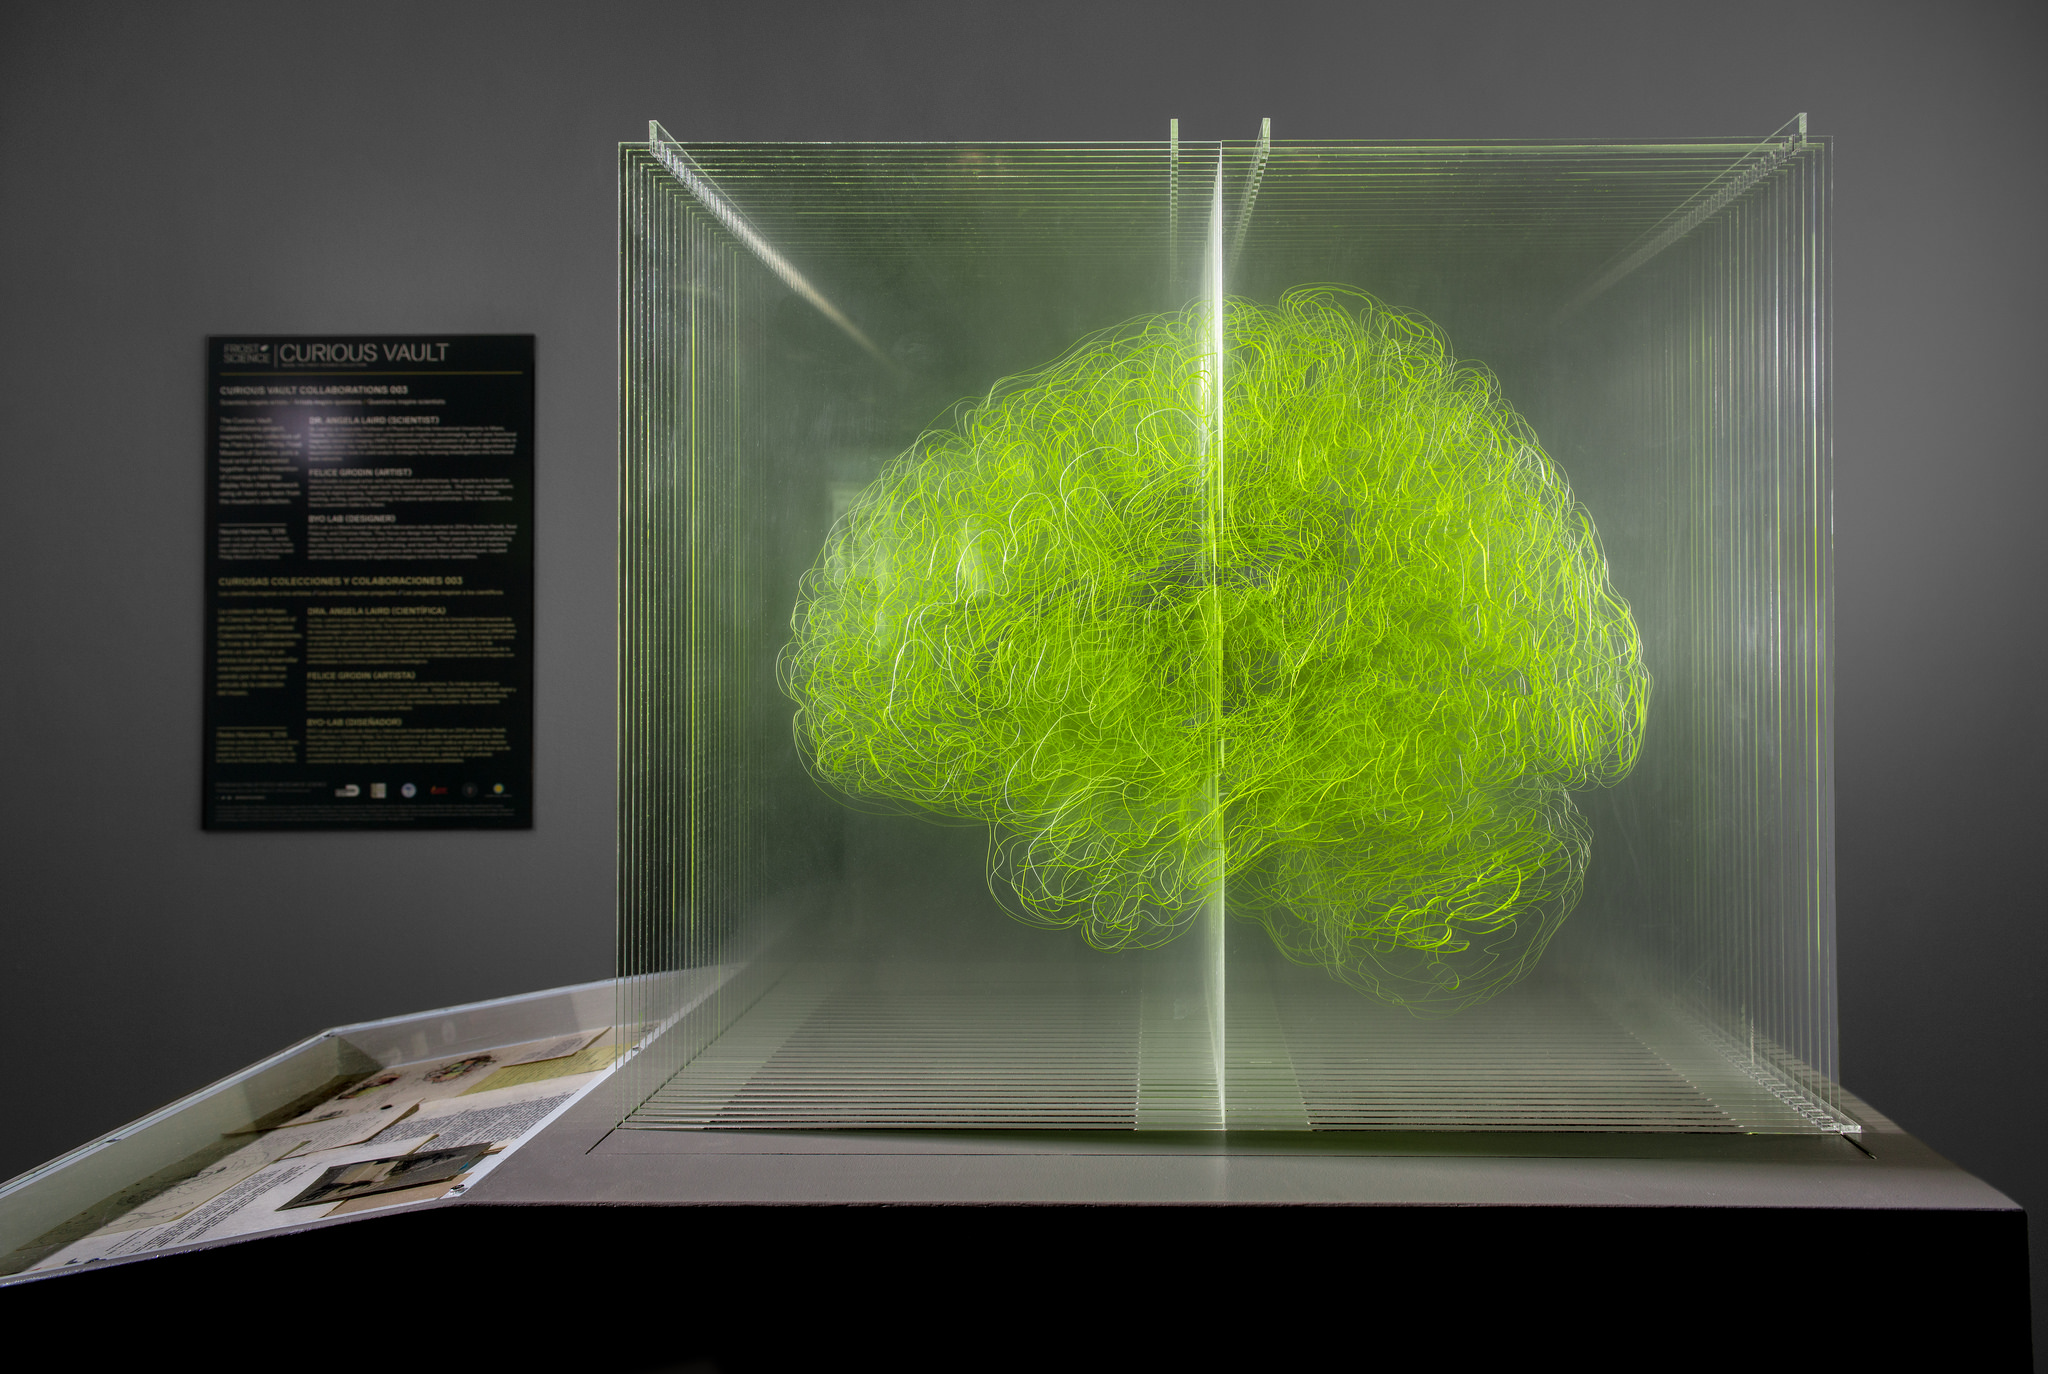 Architect, physicist create art from brain images